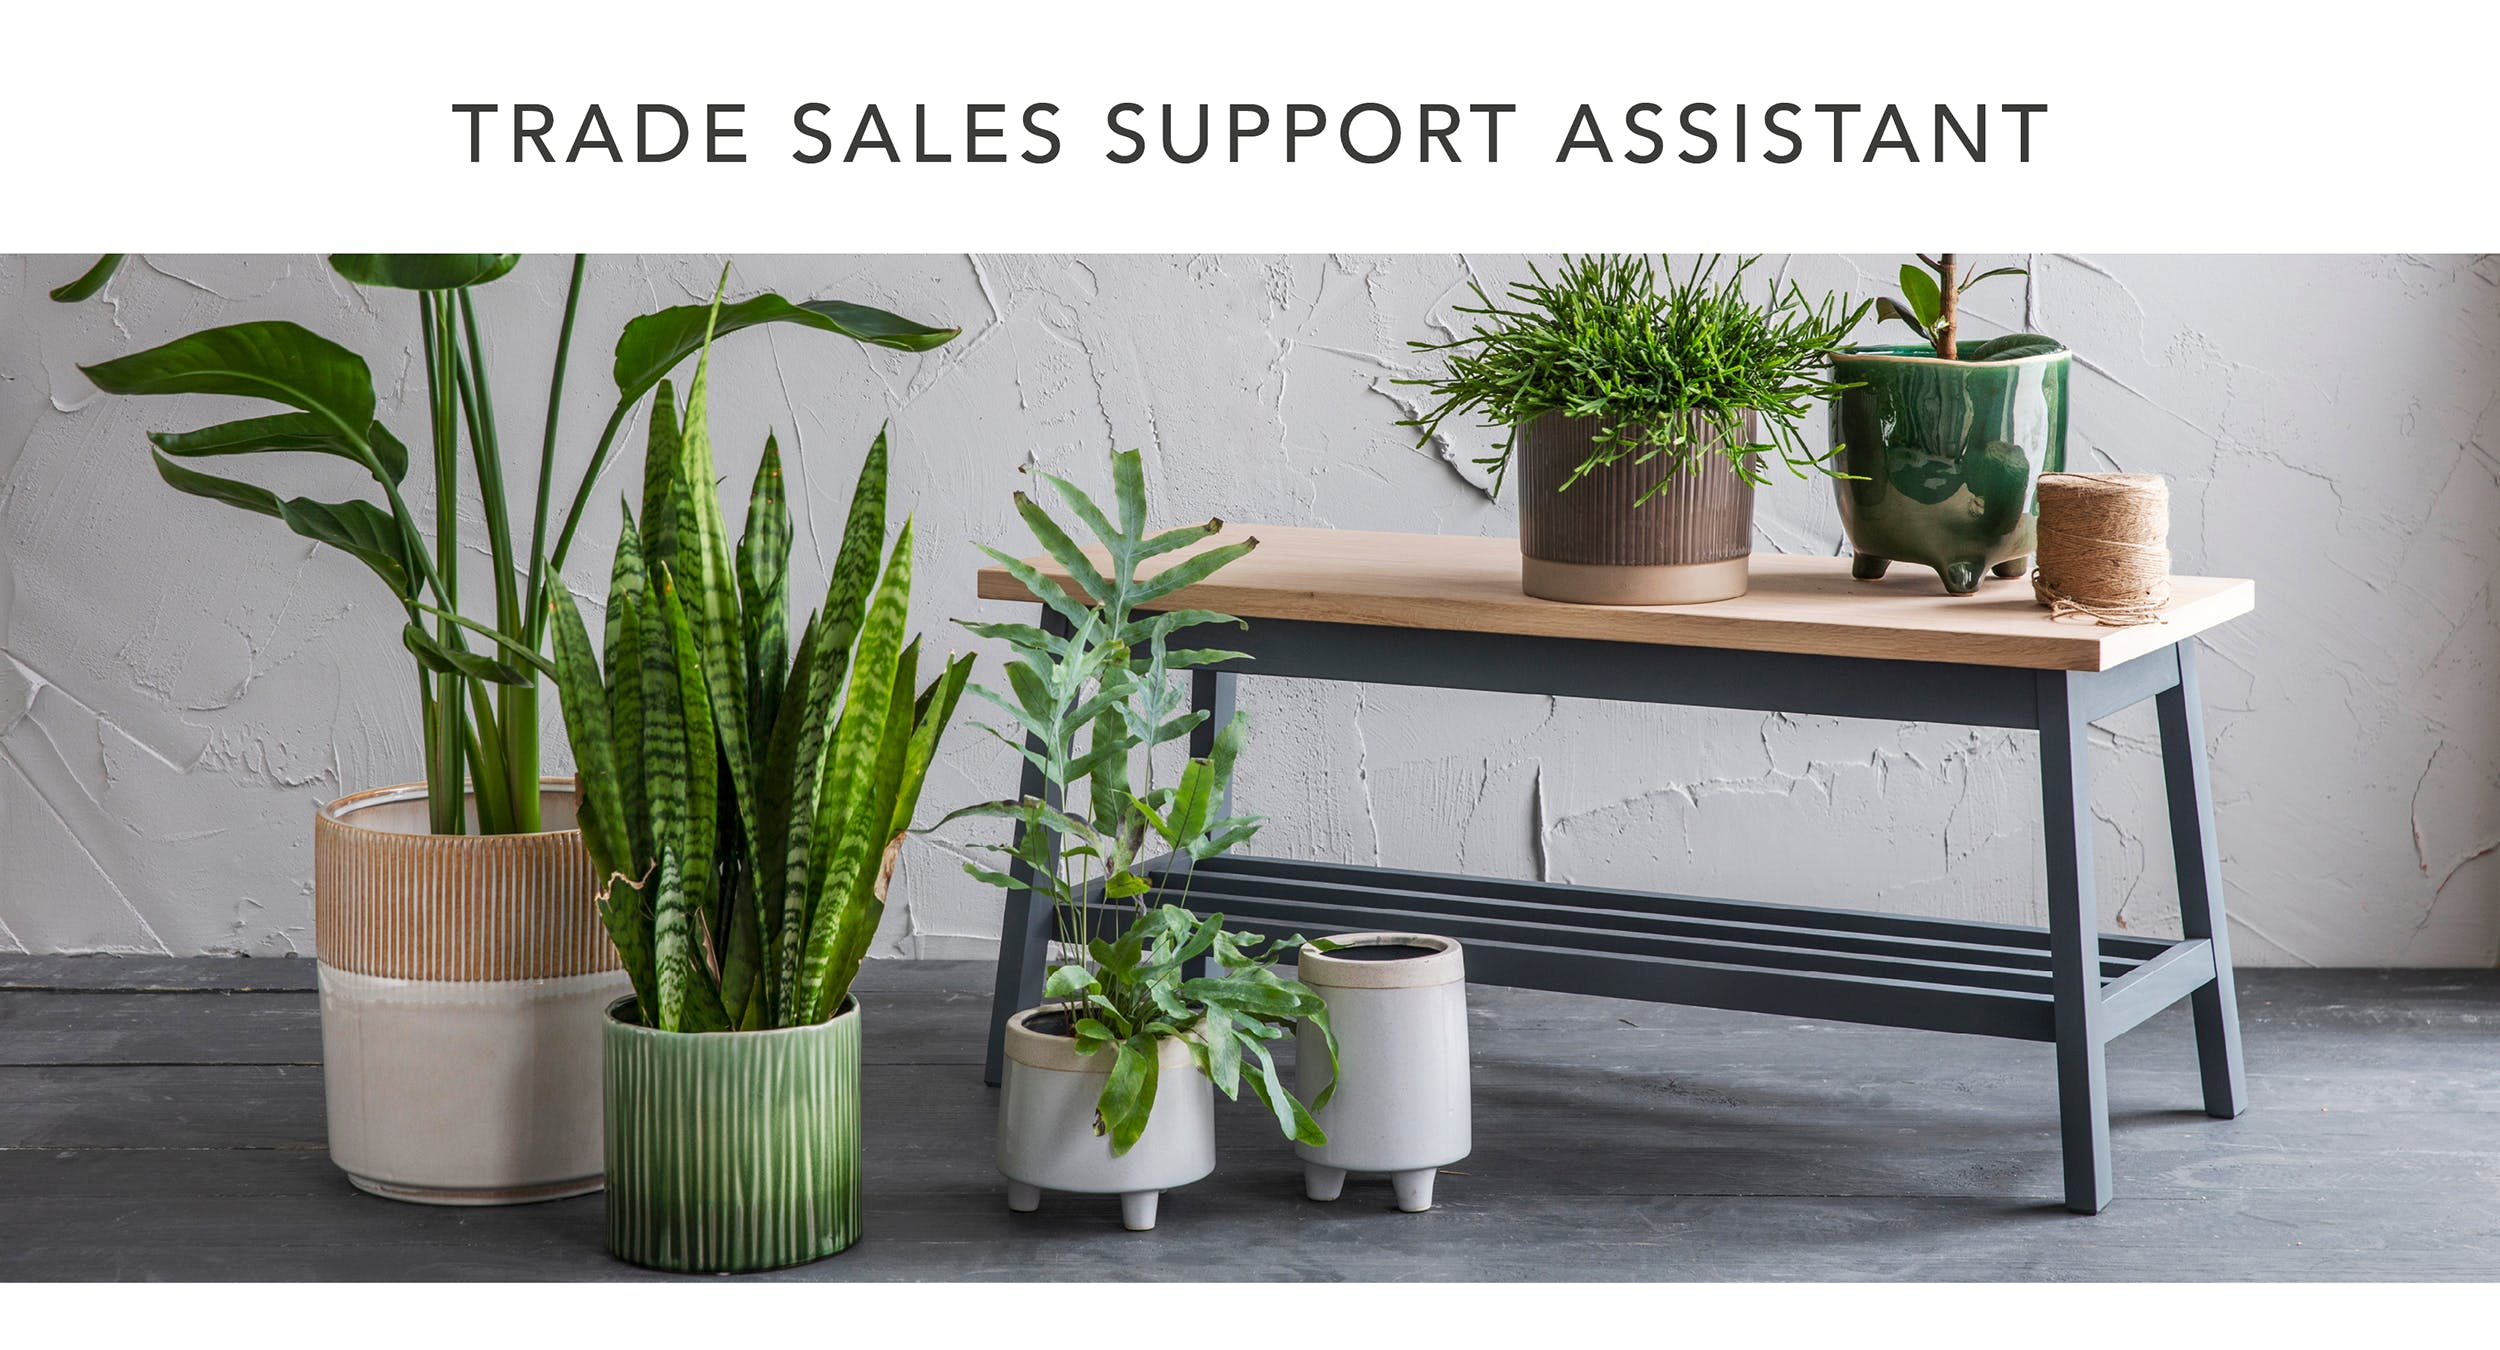 Trade Sales Support Assistant